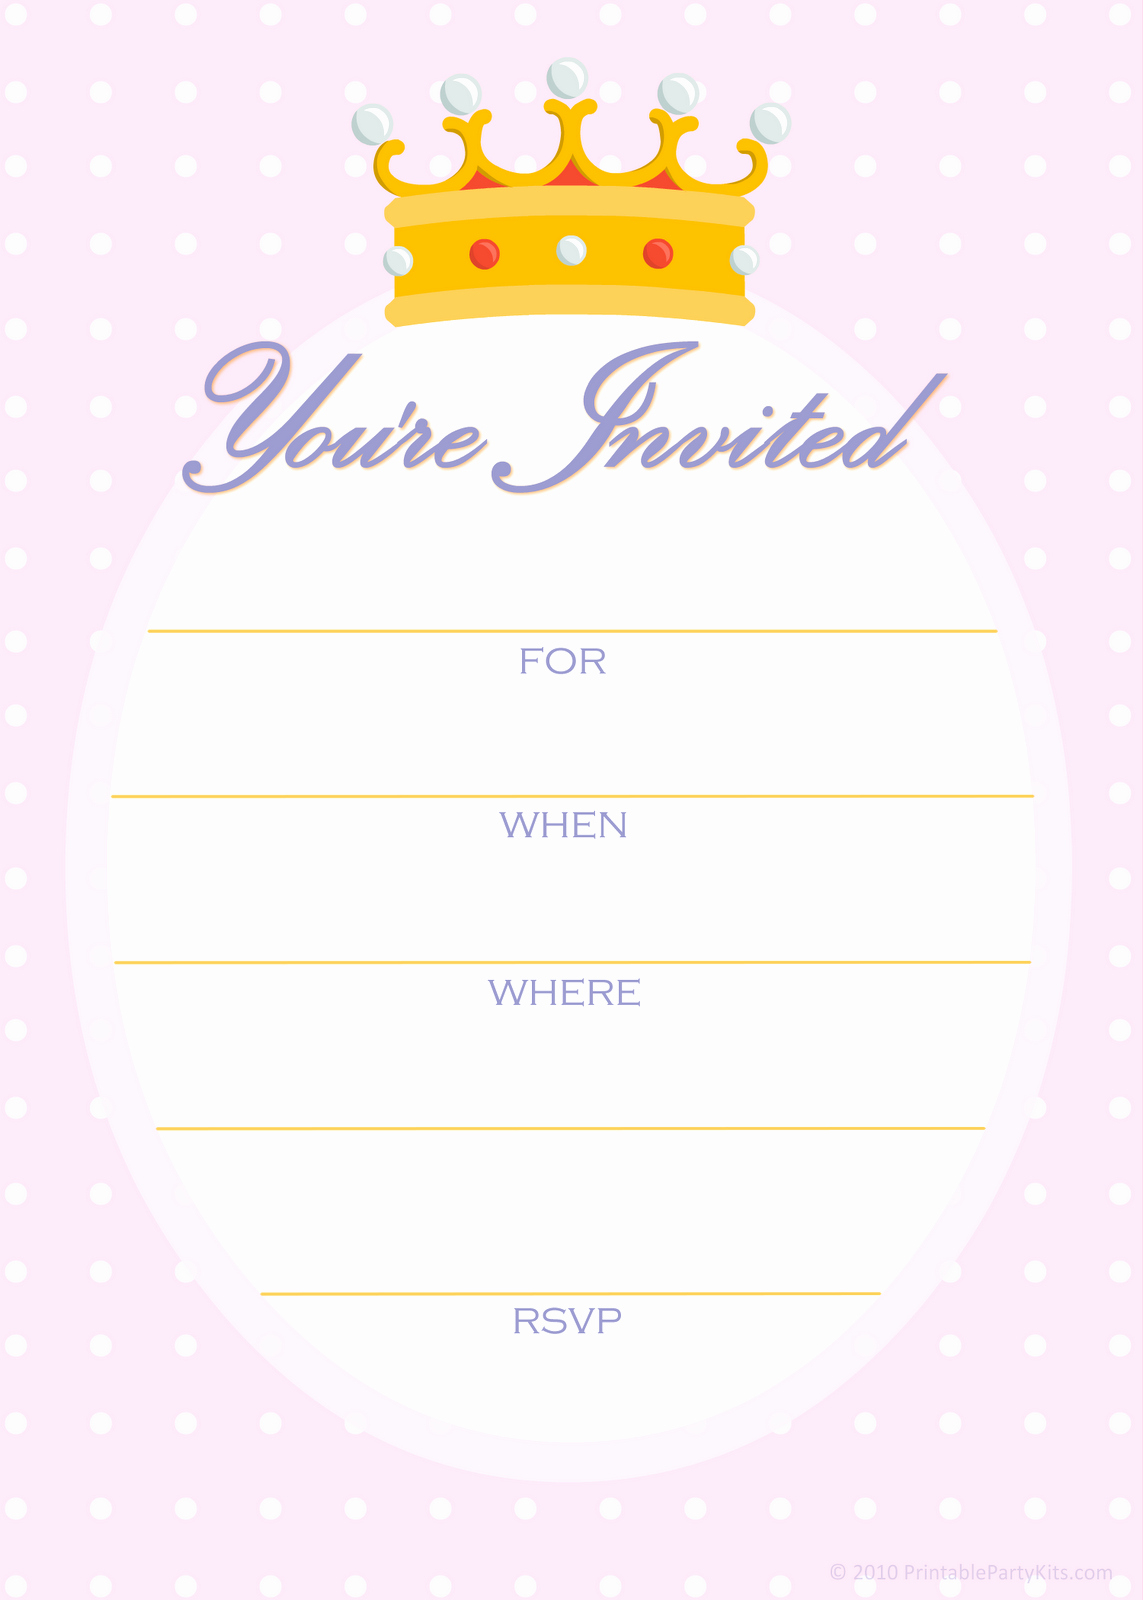 Free Printable Invitations Templates Elegant Free Printable Golden Unicorn Birthday Invitation Template